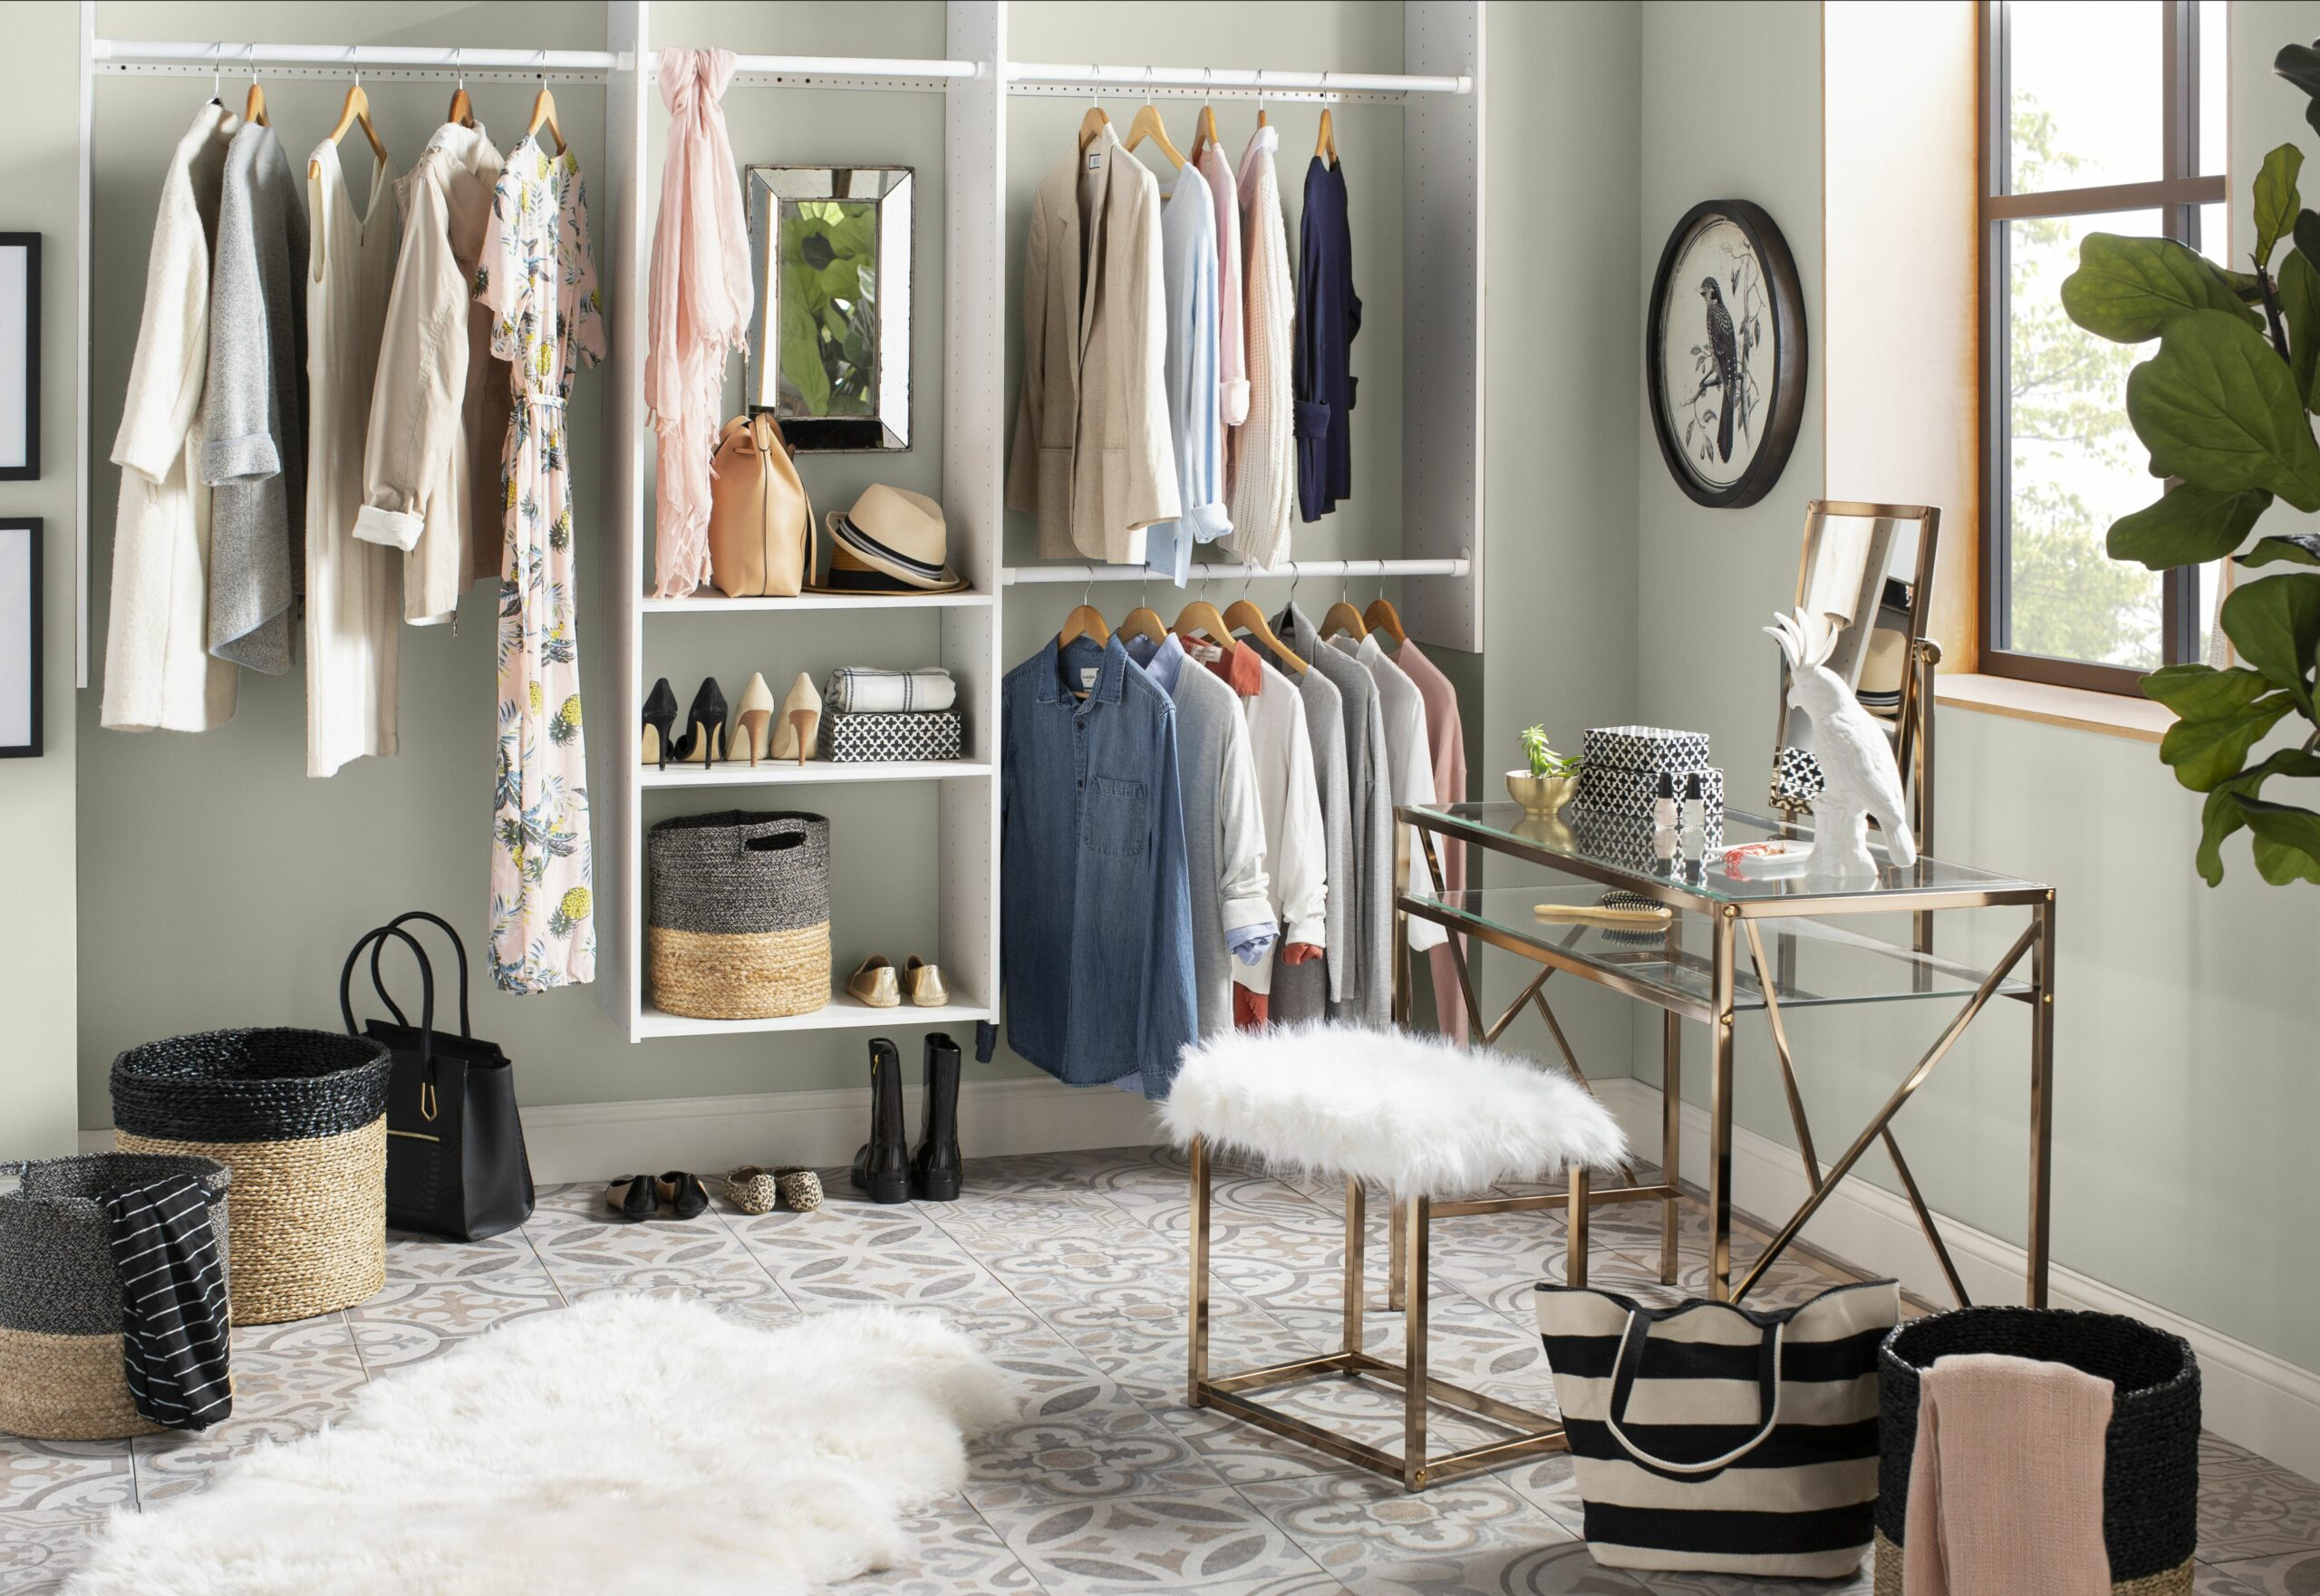 Small Closet Ideas: How to Maximize Your Space | Wayfair